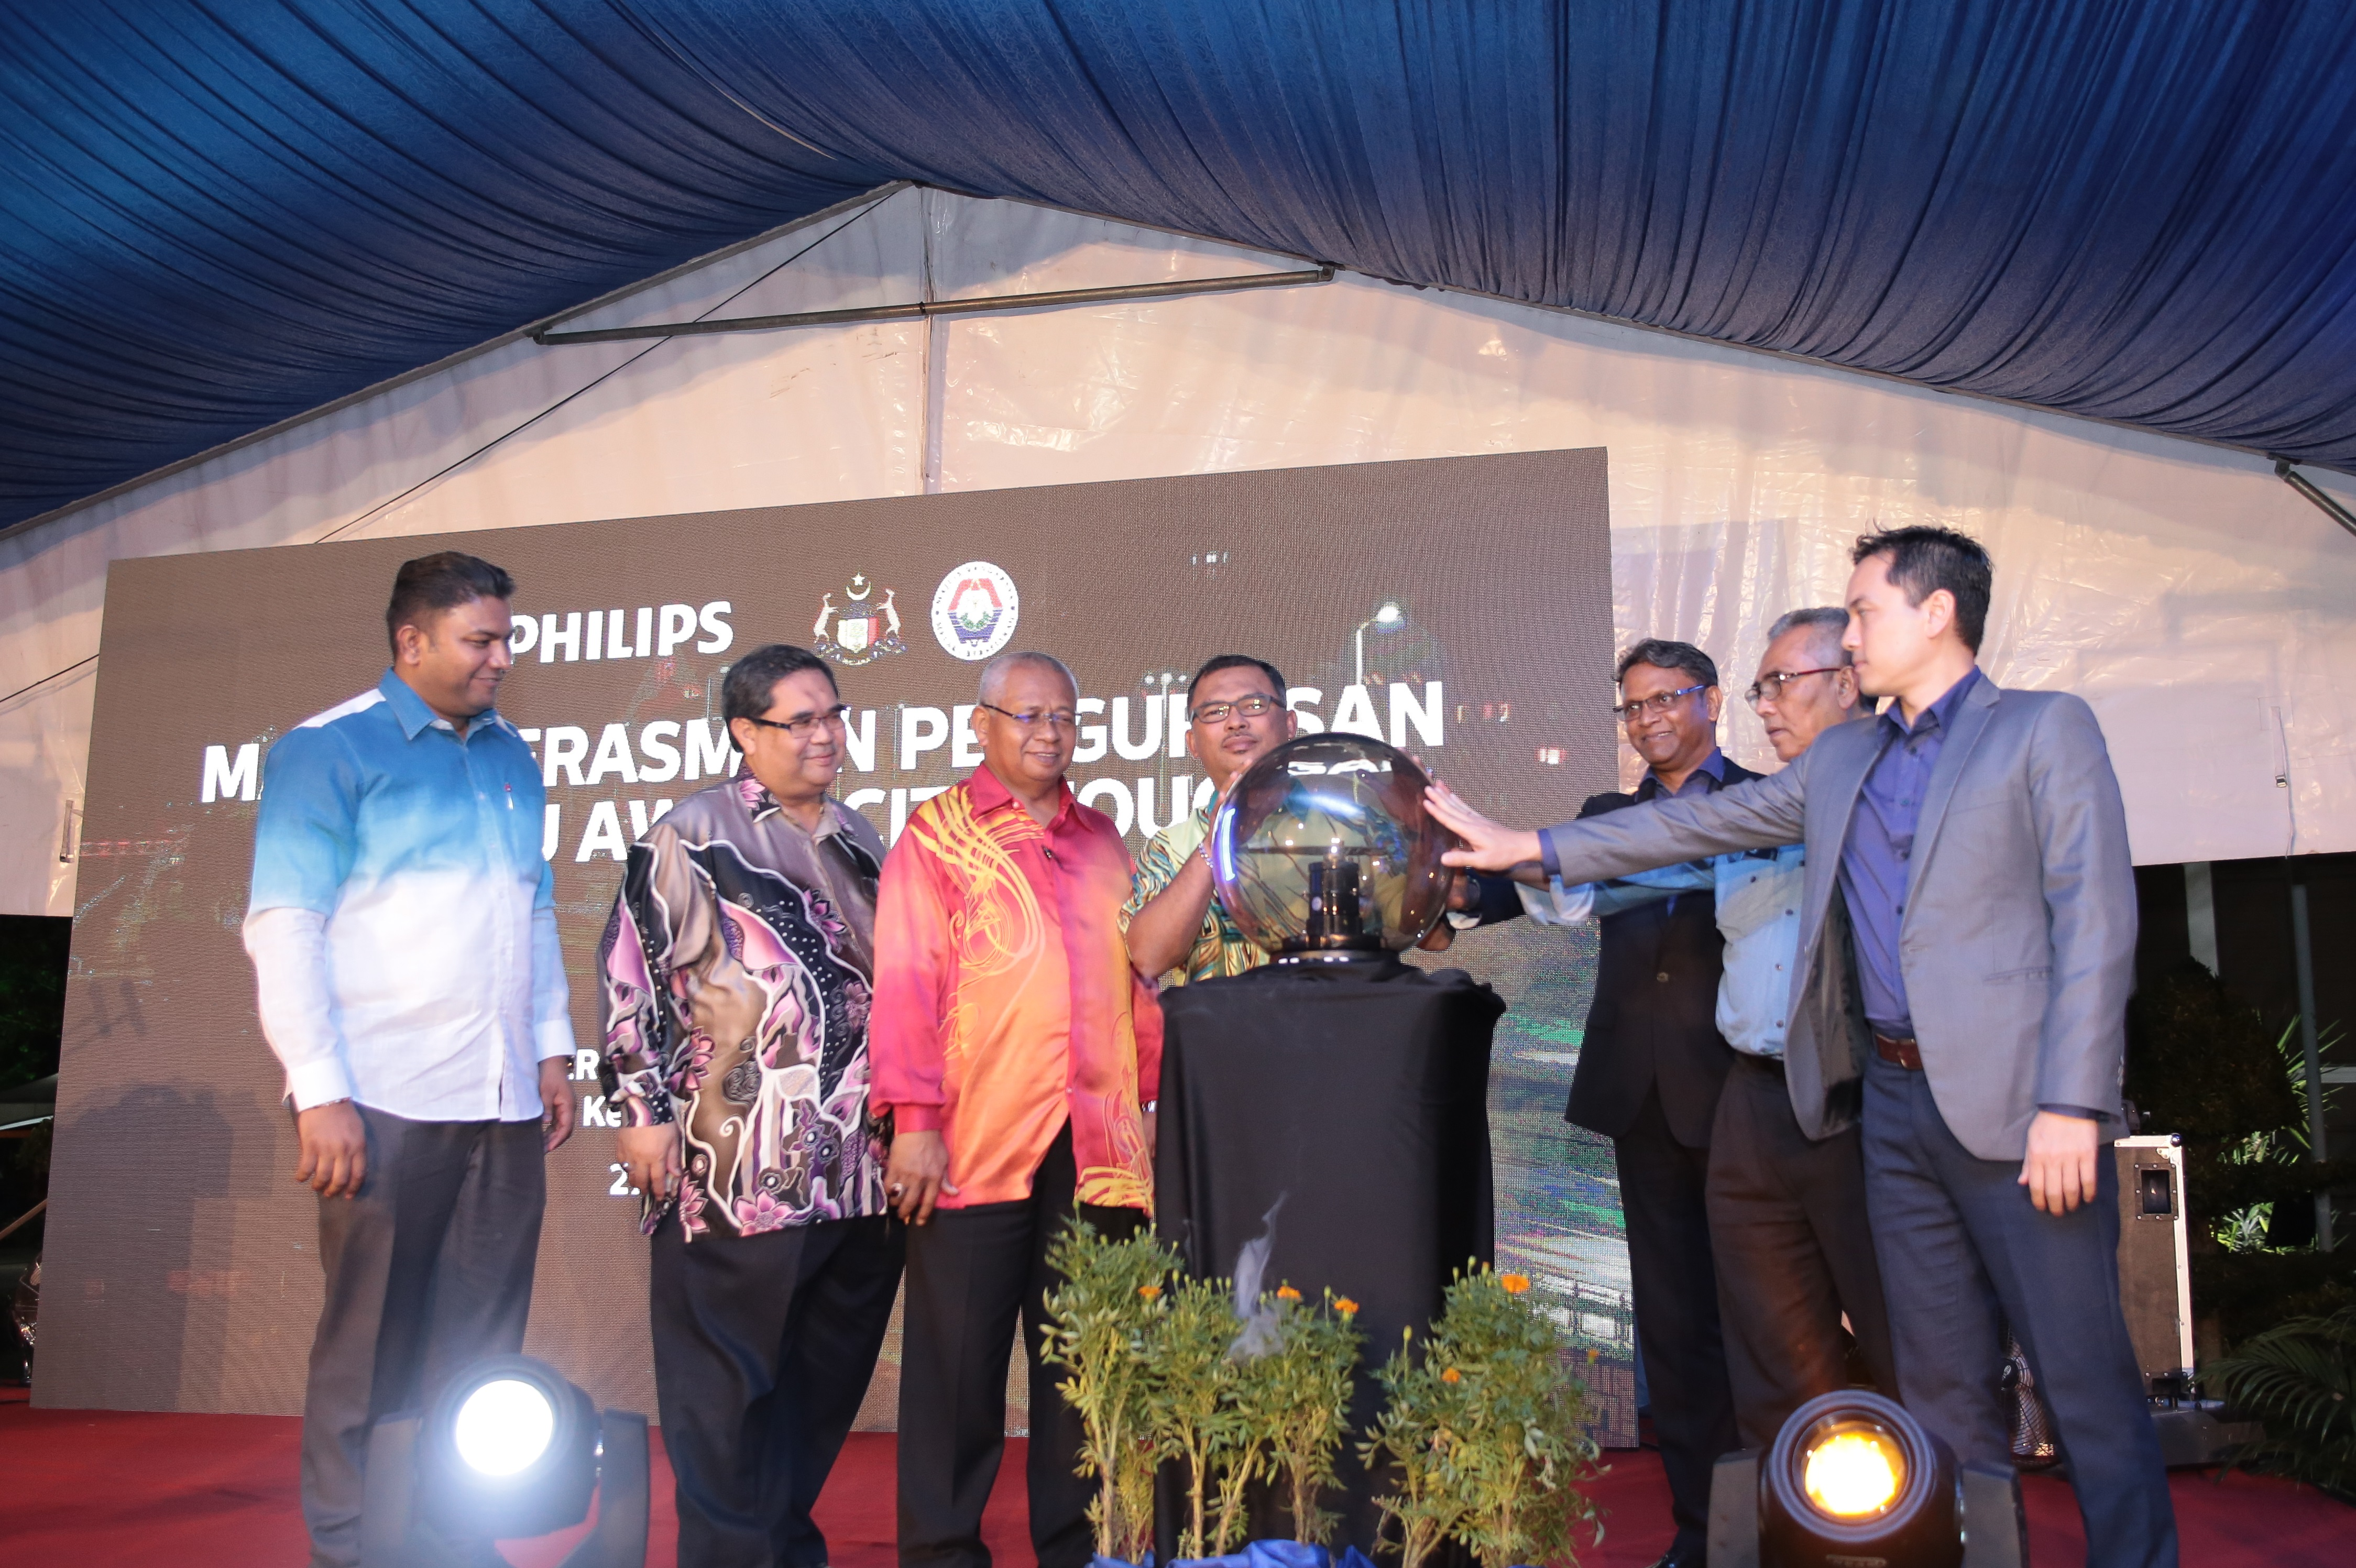 Philips CityTouch system helping Melaka achieve its green technology state transformation